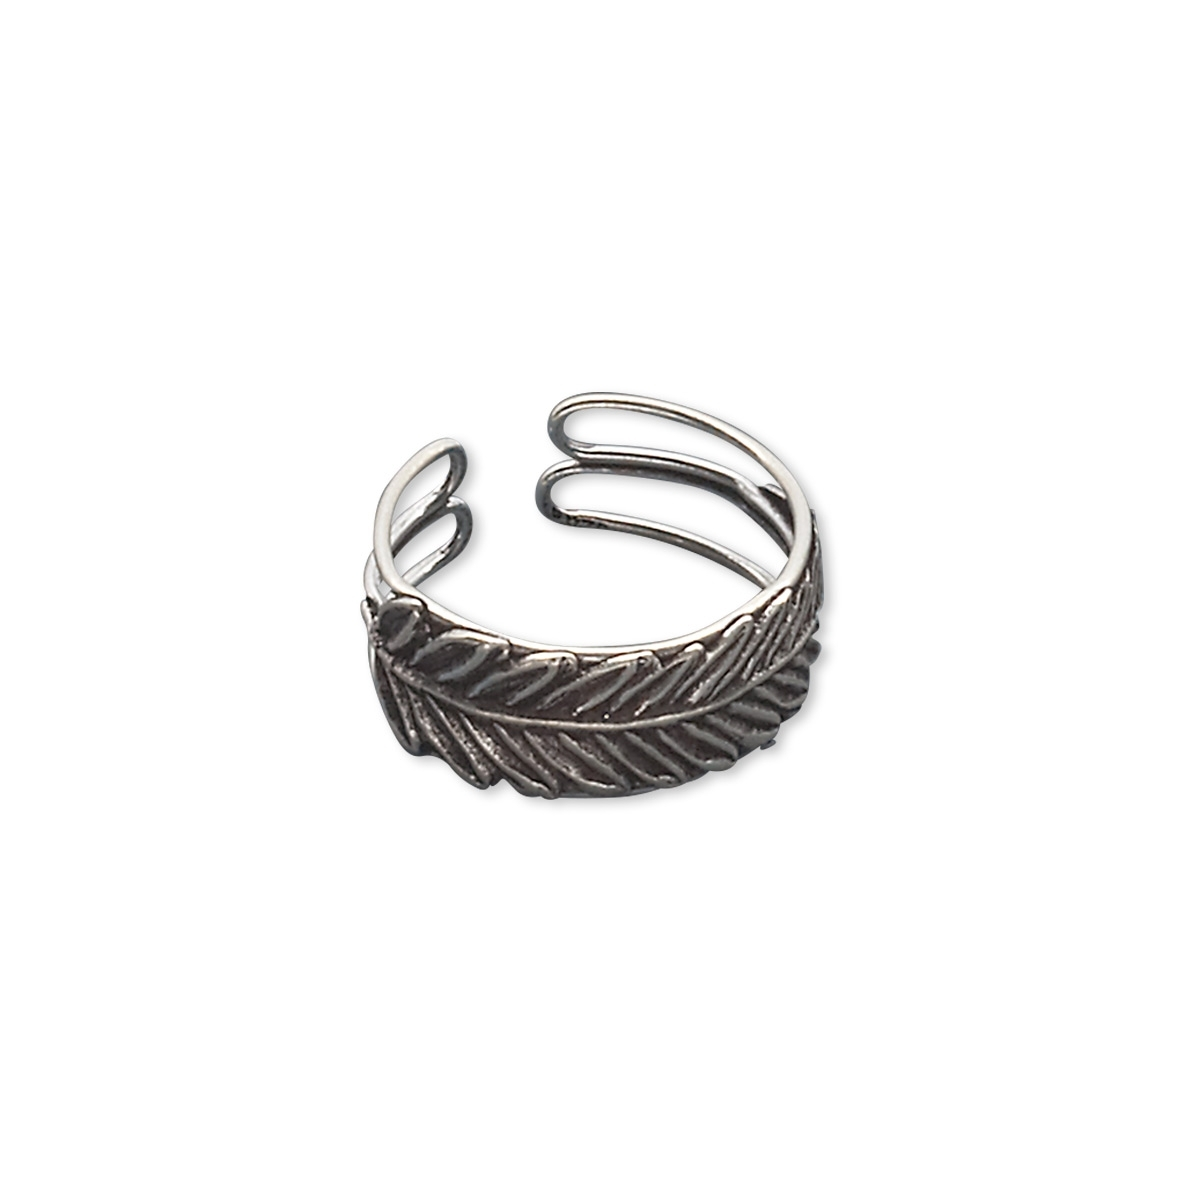 Ring, Antiqued Sterling Silver, 8mm Wide With Feather Design In Newest Feather Toe Rings (View 1 of 15)